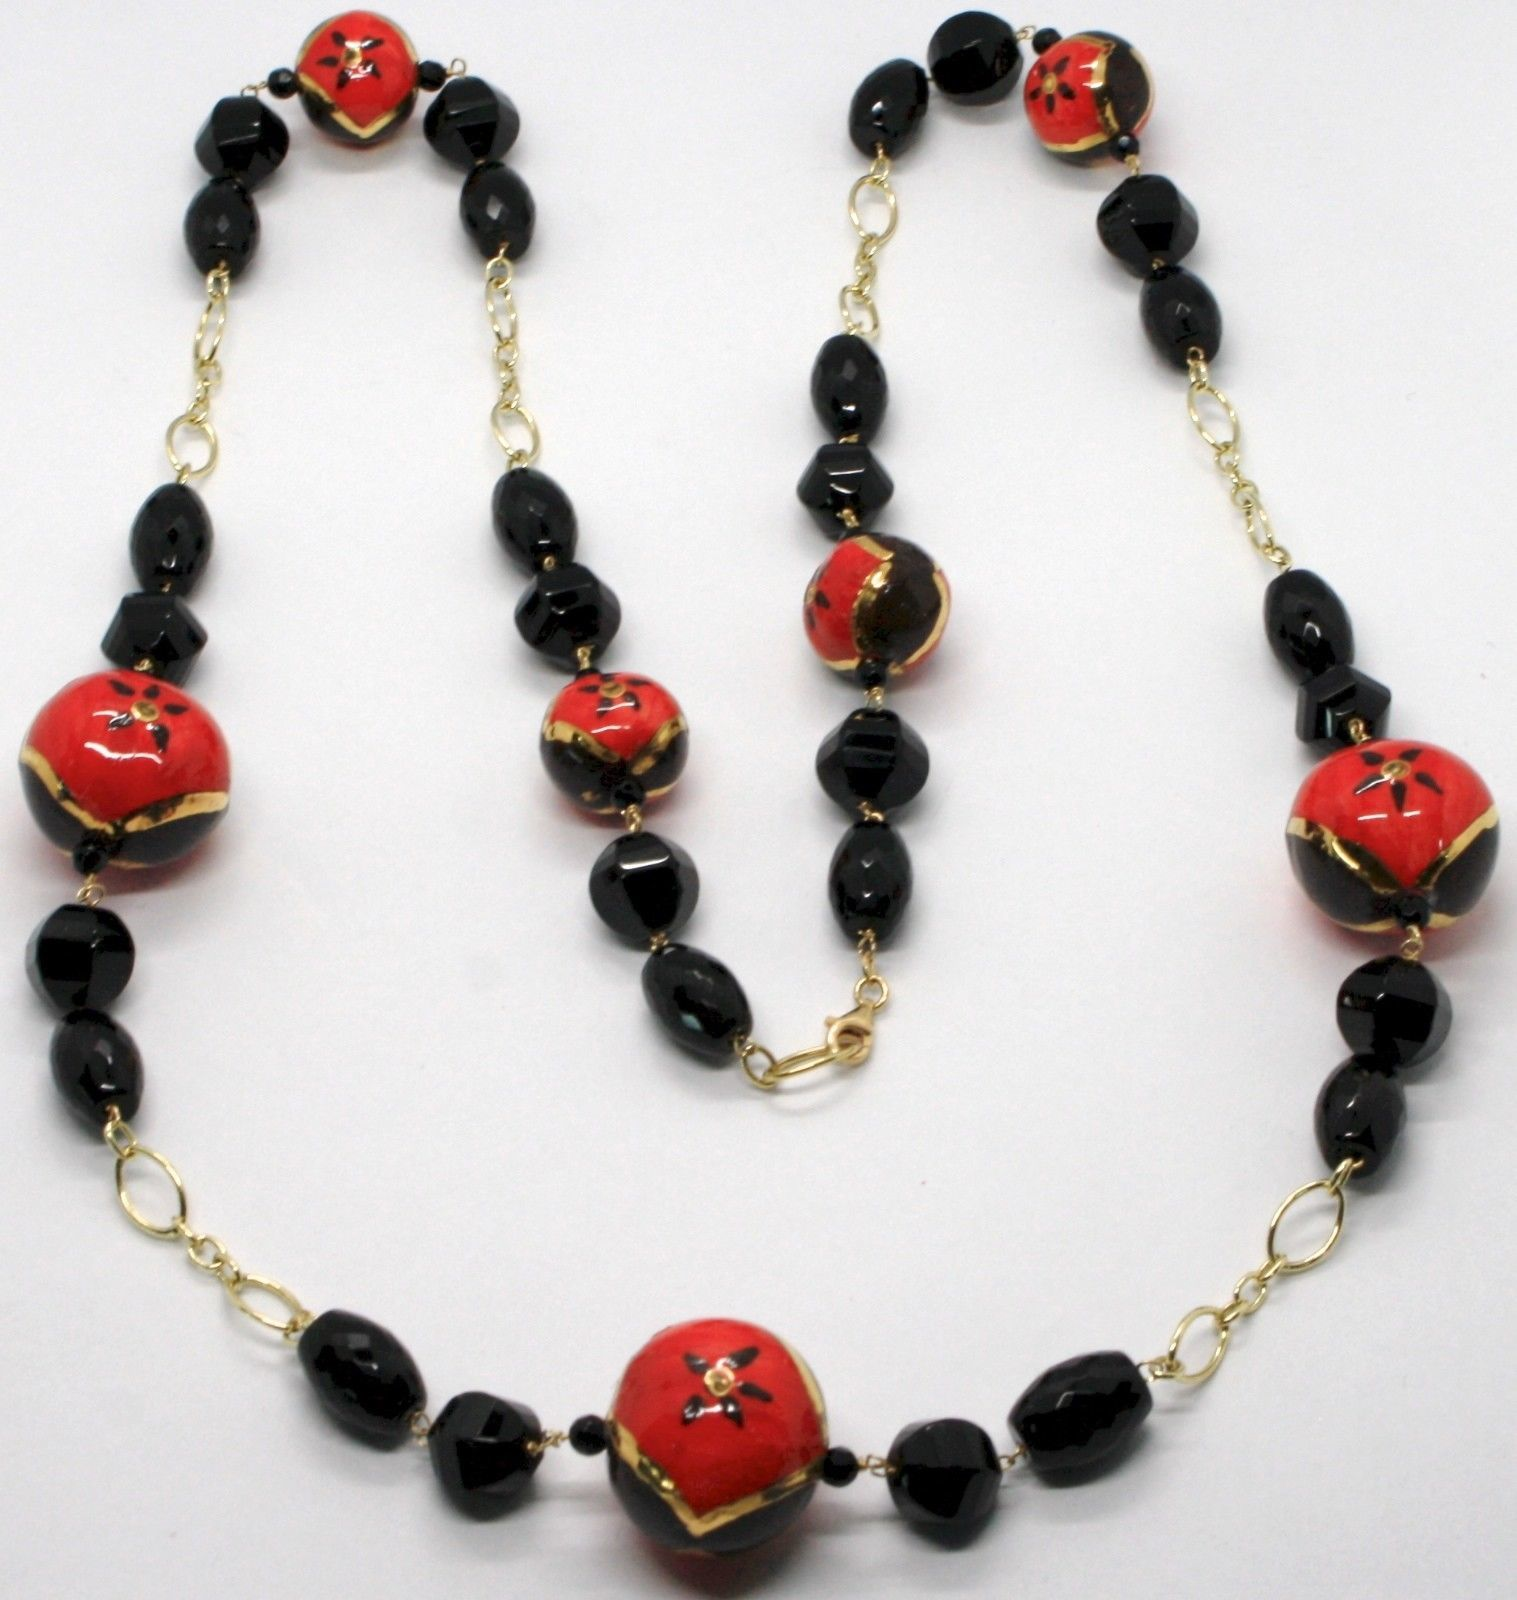 18K YELLOW GOLD LONG NECKLACE ONYX, BLACK RED CERAMIC DROP HAND PAINTED IN ITALY